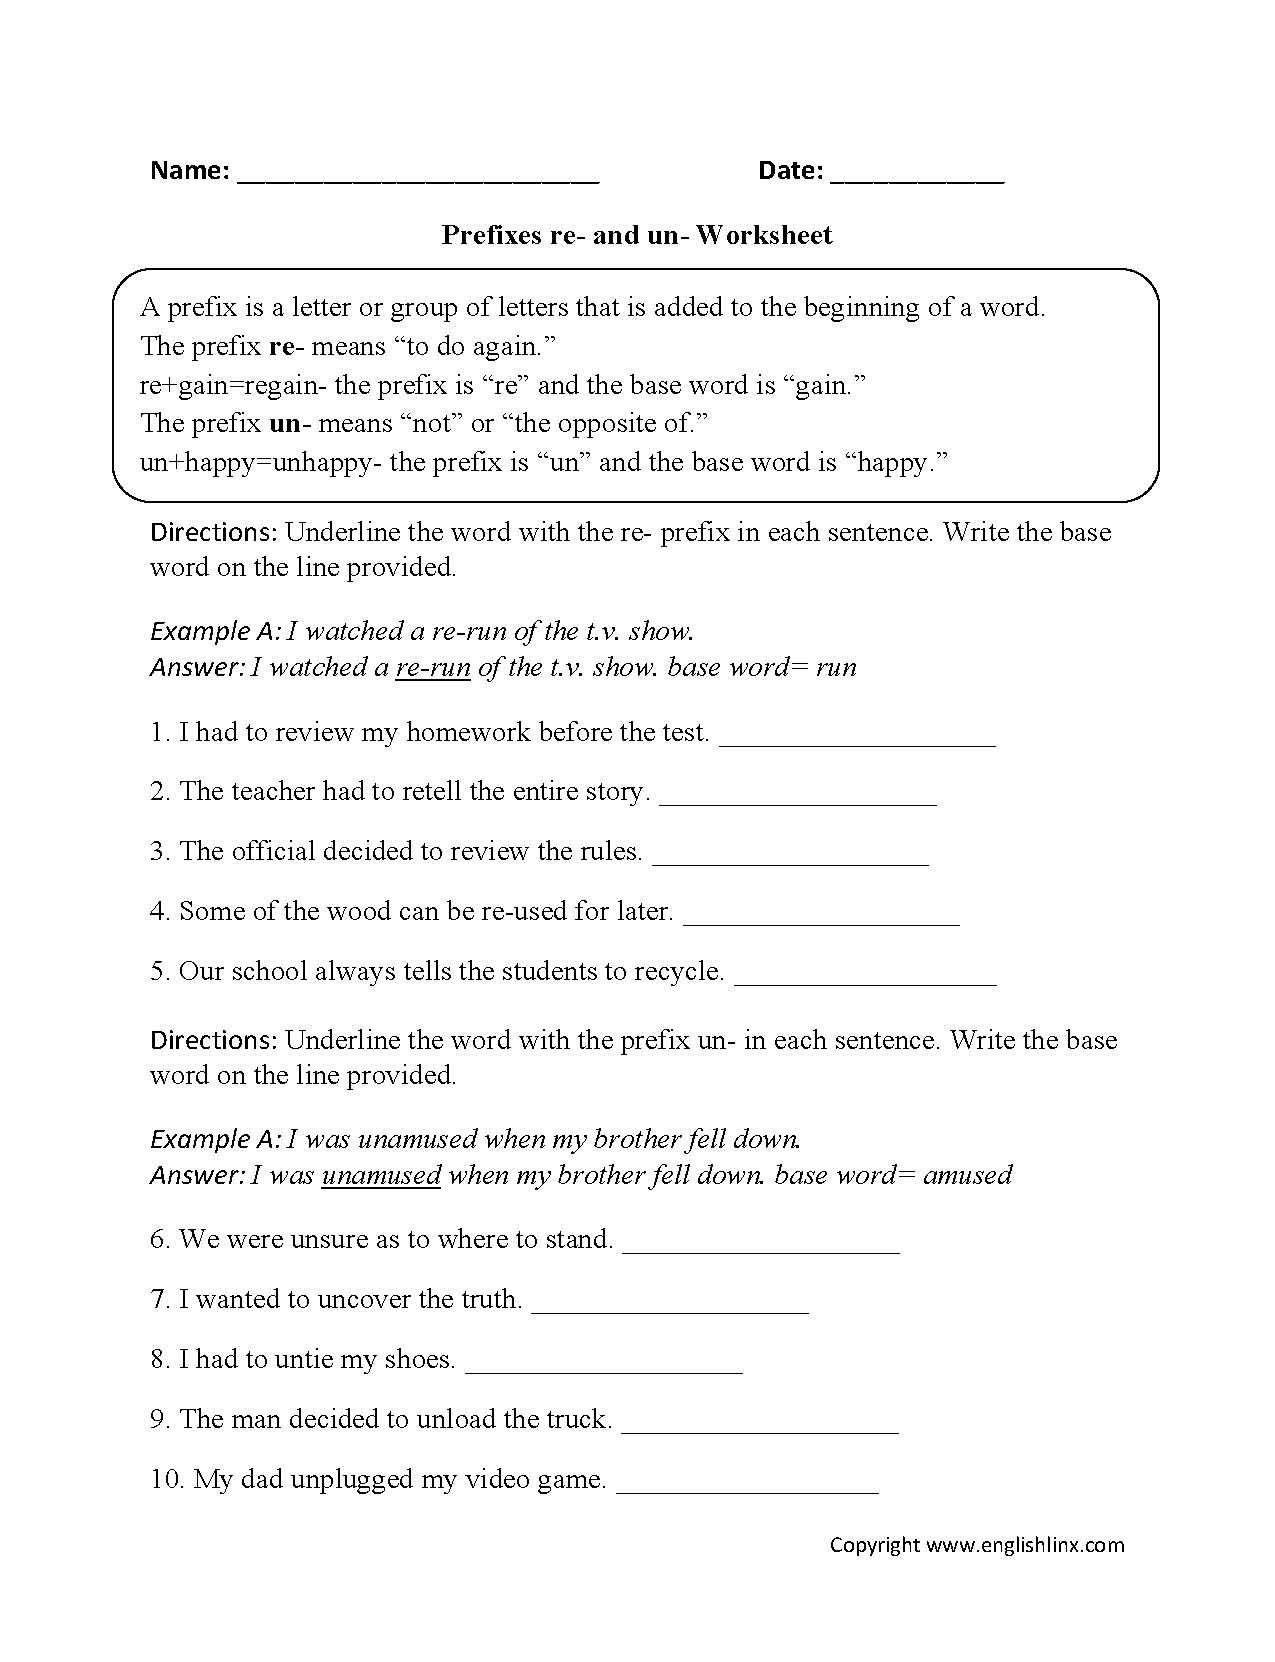 hight resolution of Englishlinx.com   Prefixes Worksheets